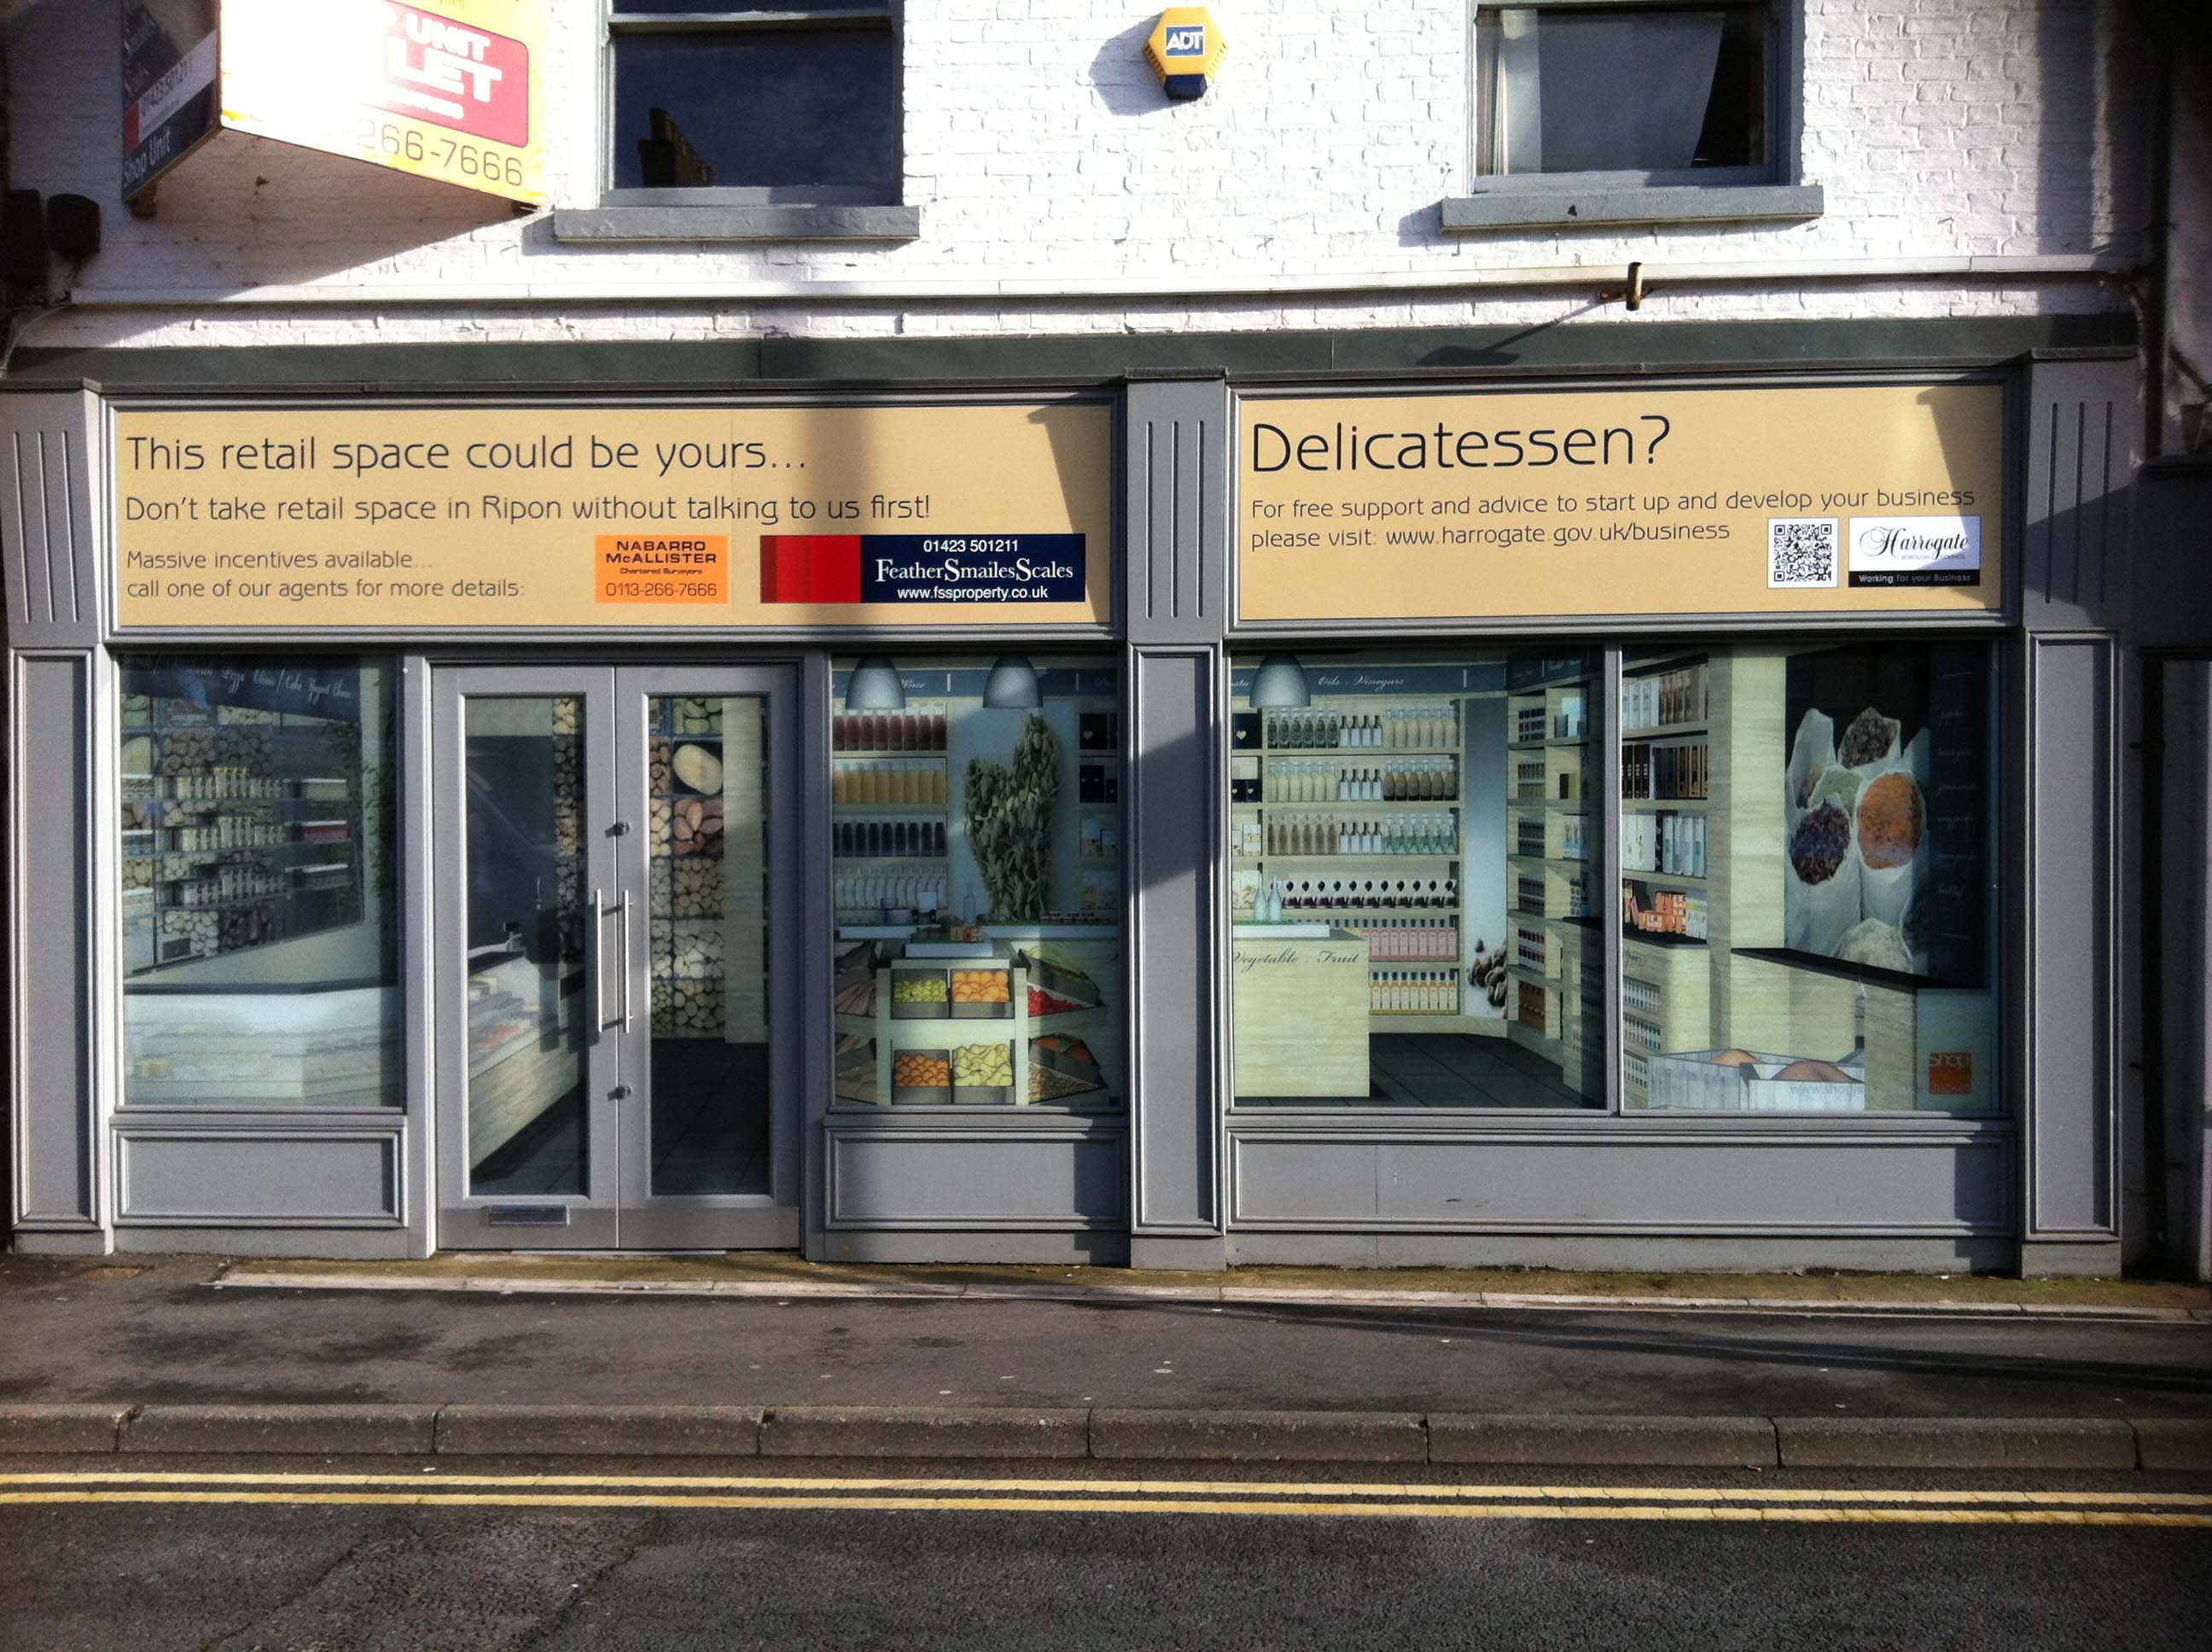 Whitley Bay Firm Helps To Boost High Streets With Creative Shop Front Designs